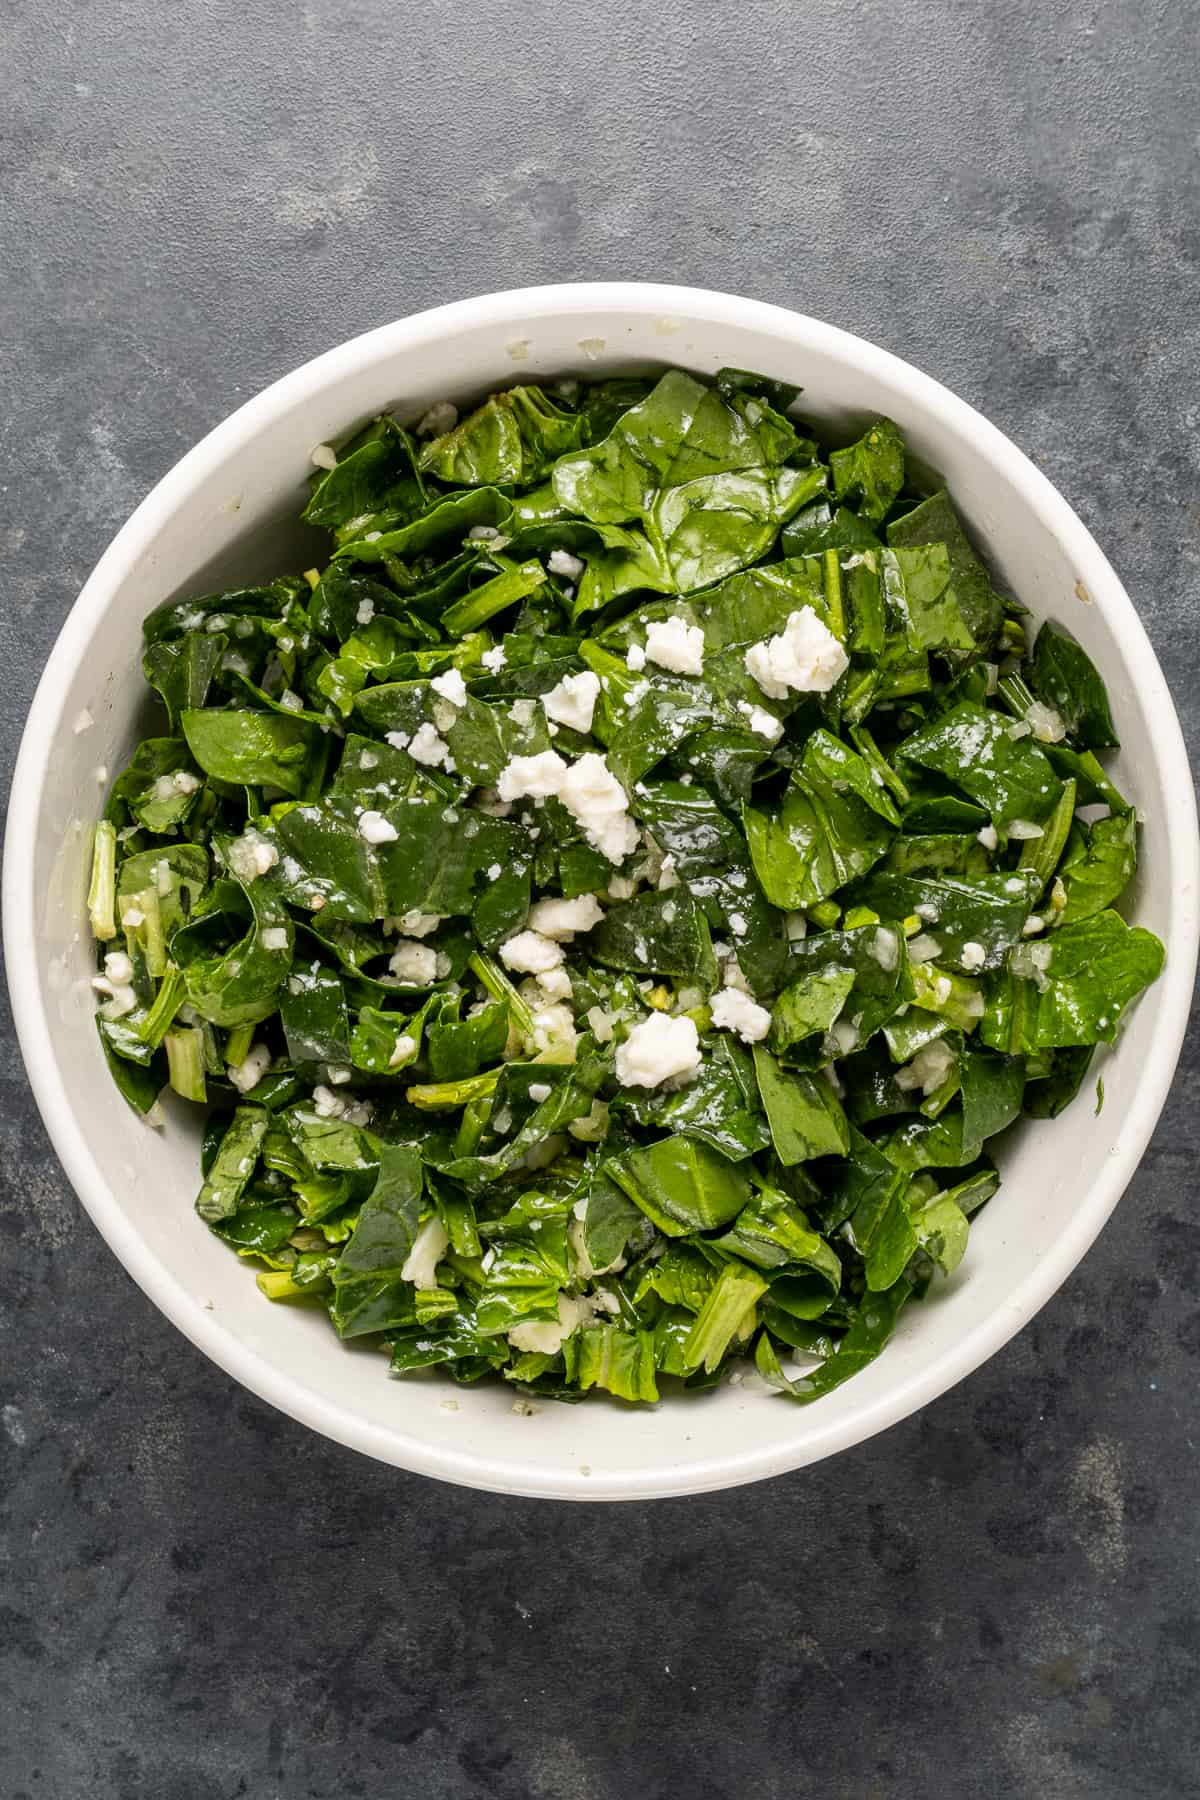 Spinach and cheese filling mixture in a white bowl